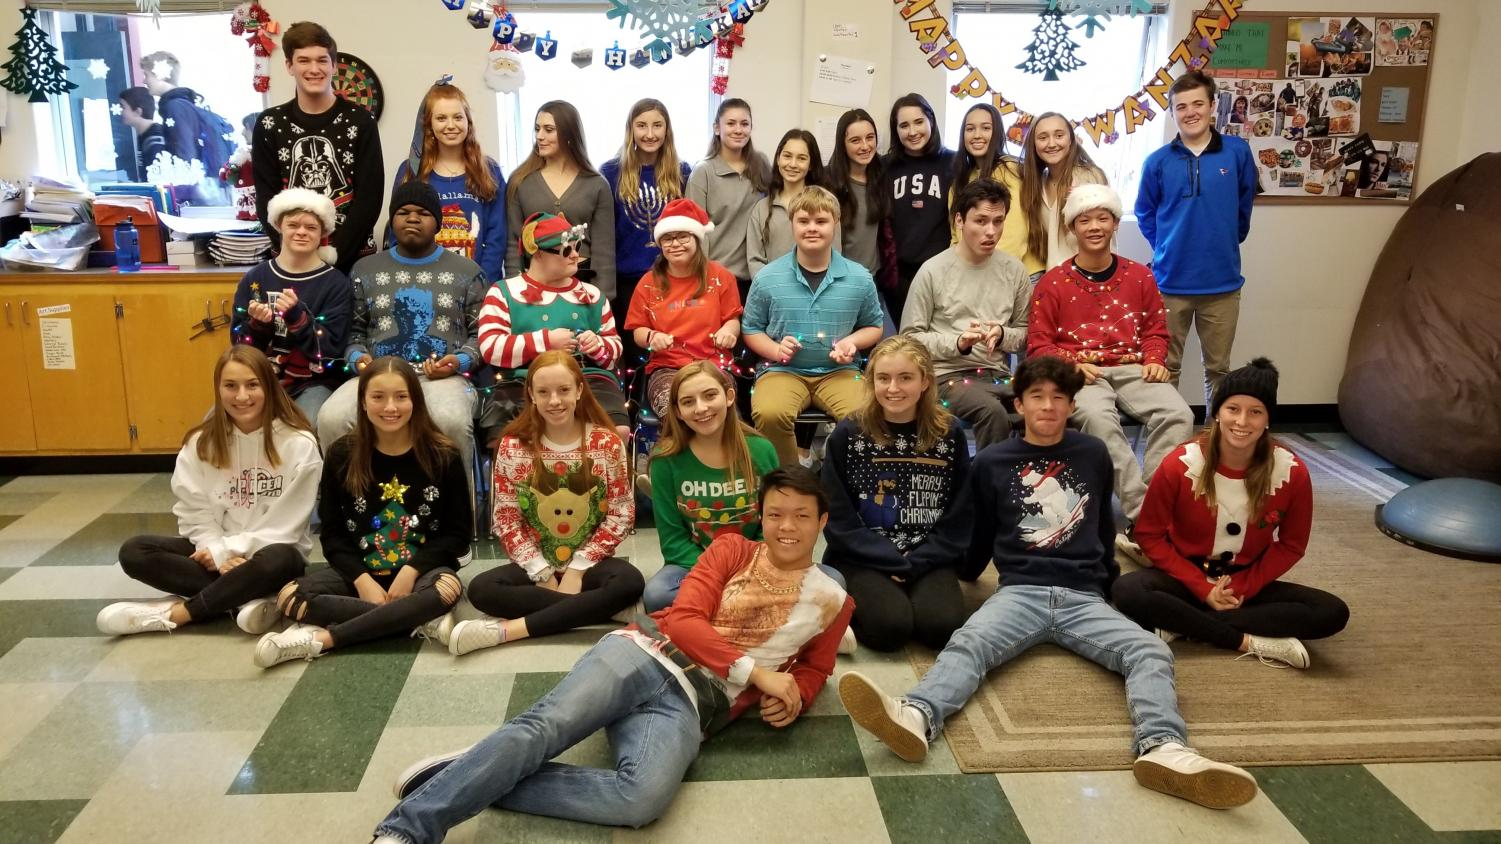 Leadership students, students that help in the Special Education class, and Special Education students pose in their ugly holiday sweaters from Boudin and Ugly Sweater Day on December 7.